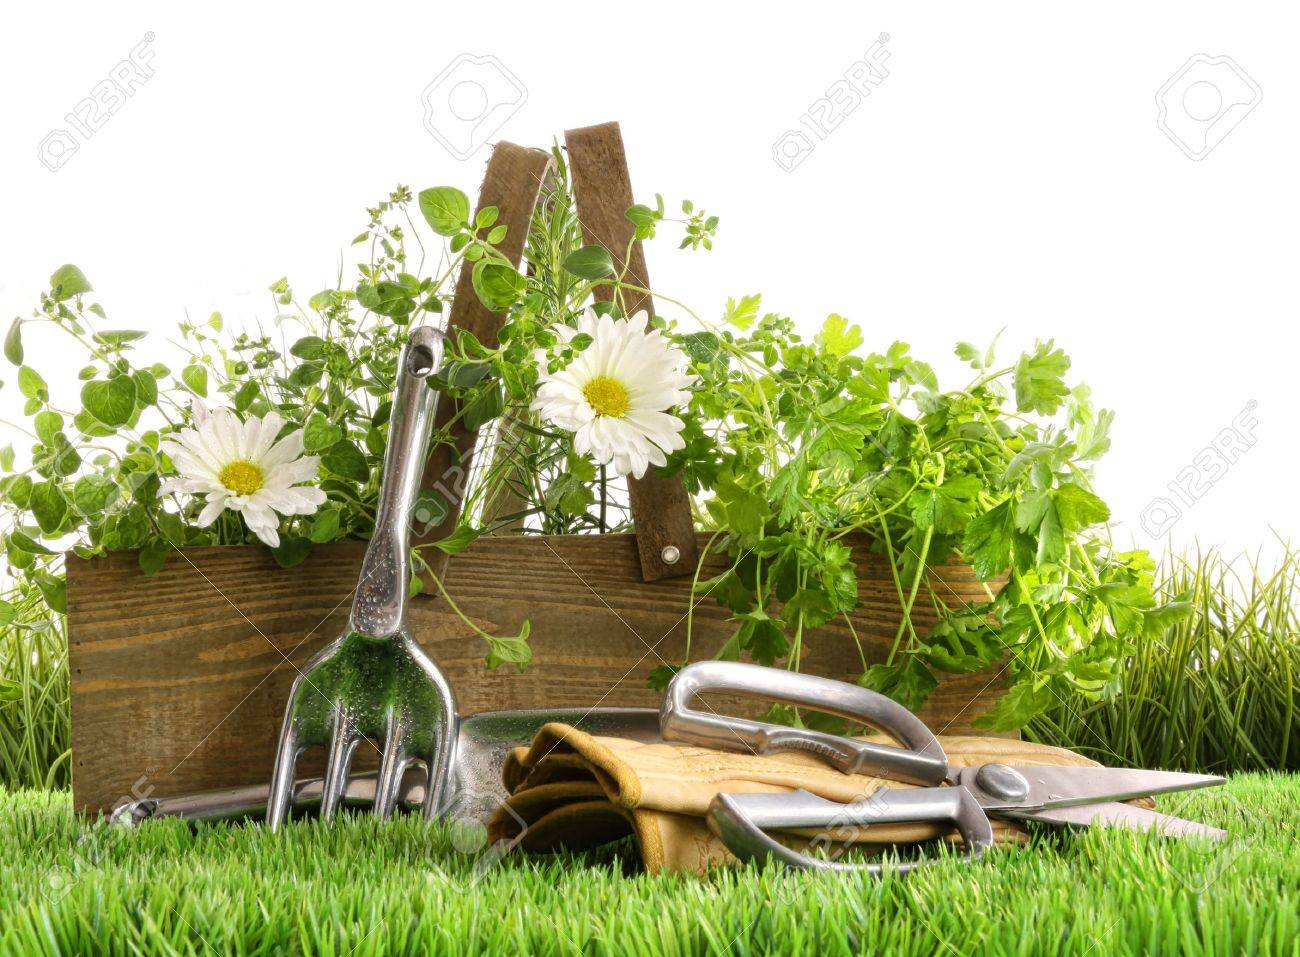 garden boots fresh herbs in wooden box with garden tools on grass